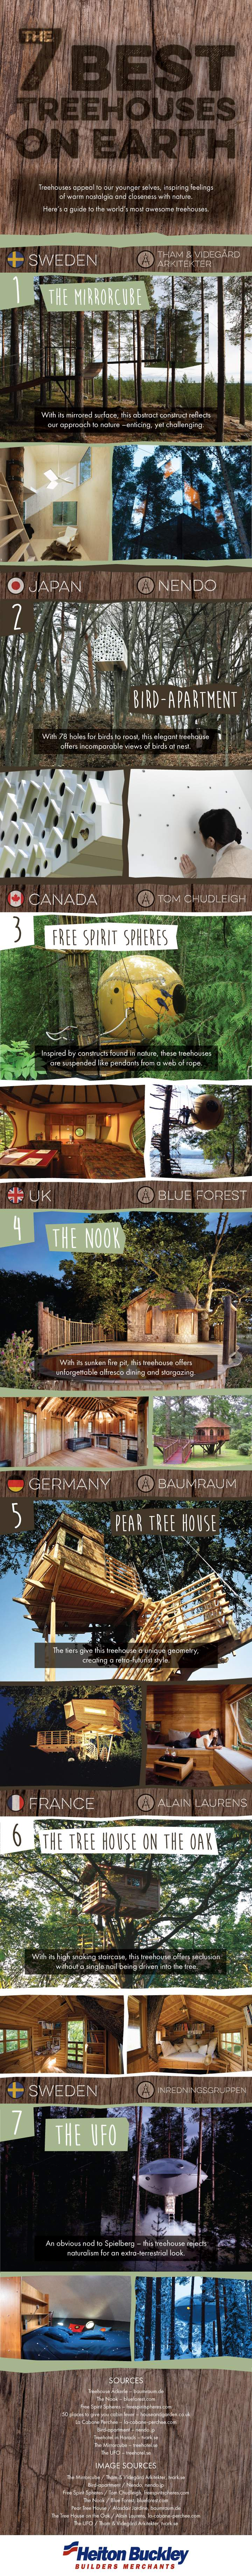 Best Tree Houses On Earth